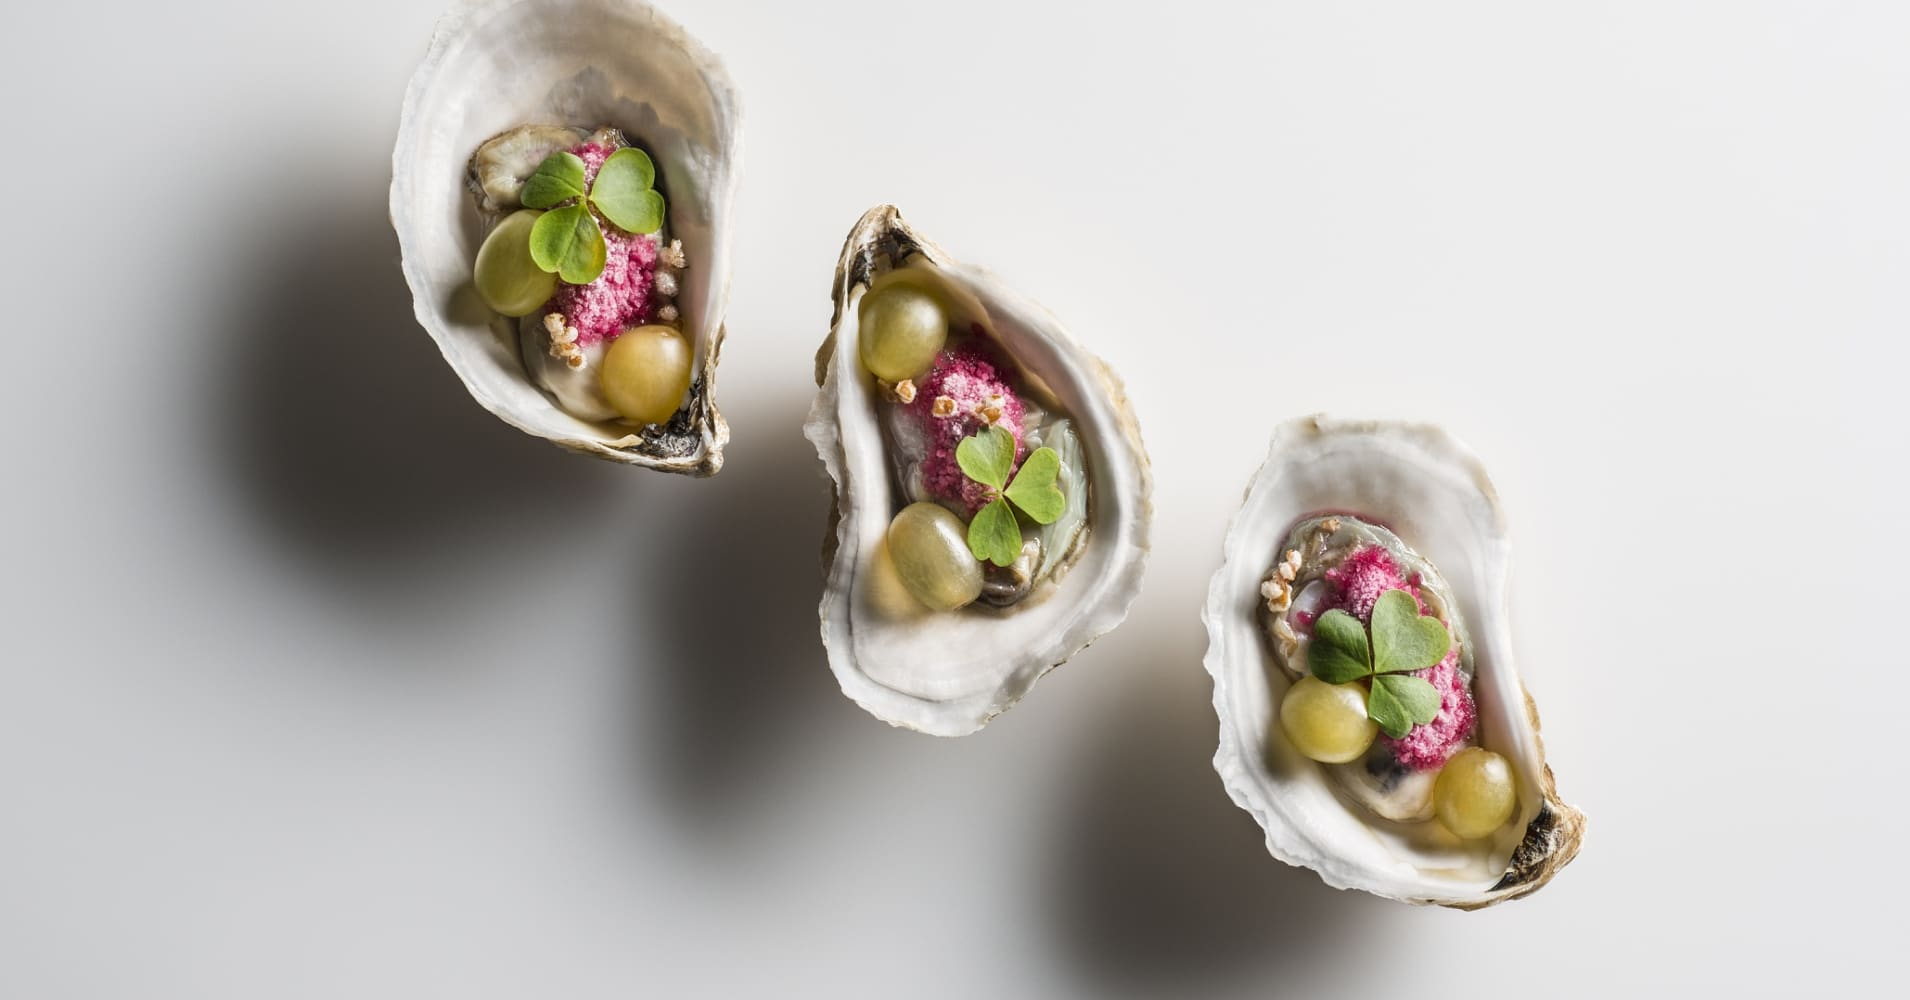 Oysters at Eleven Madison Park